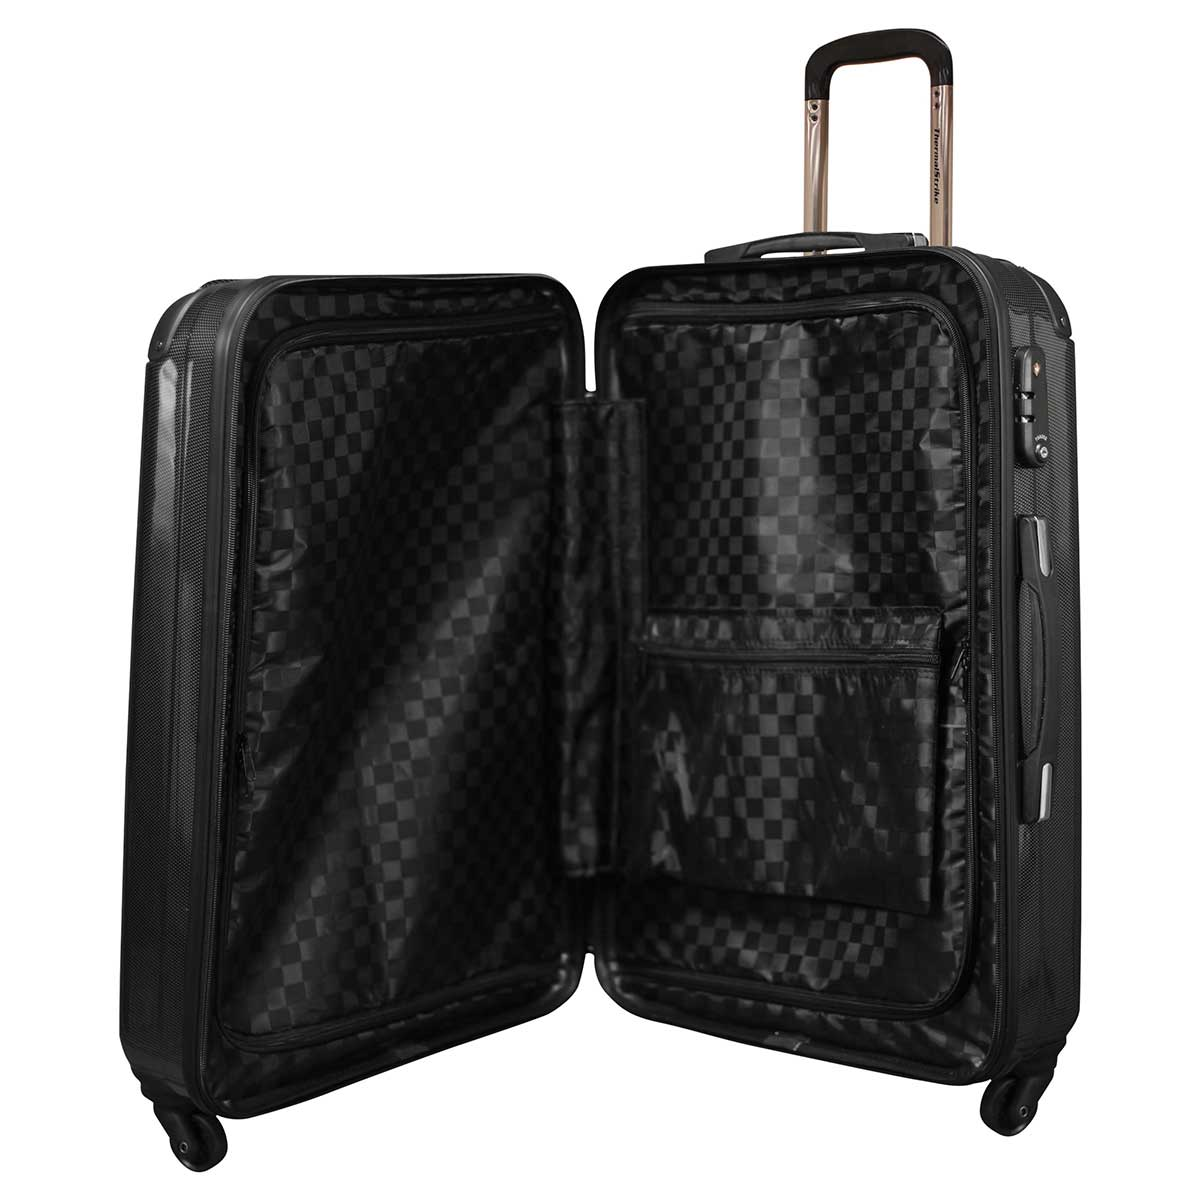 ThermalStrike luggage features large, interior zippered compartments as well as an interior pocket for easy access to small items.